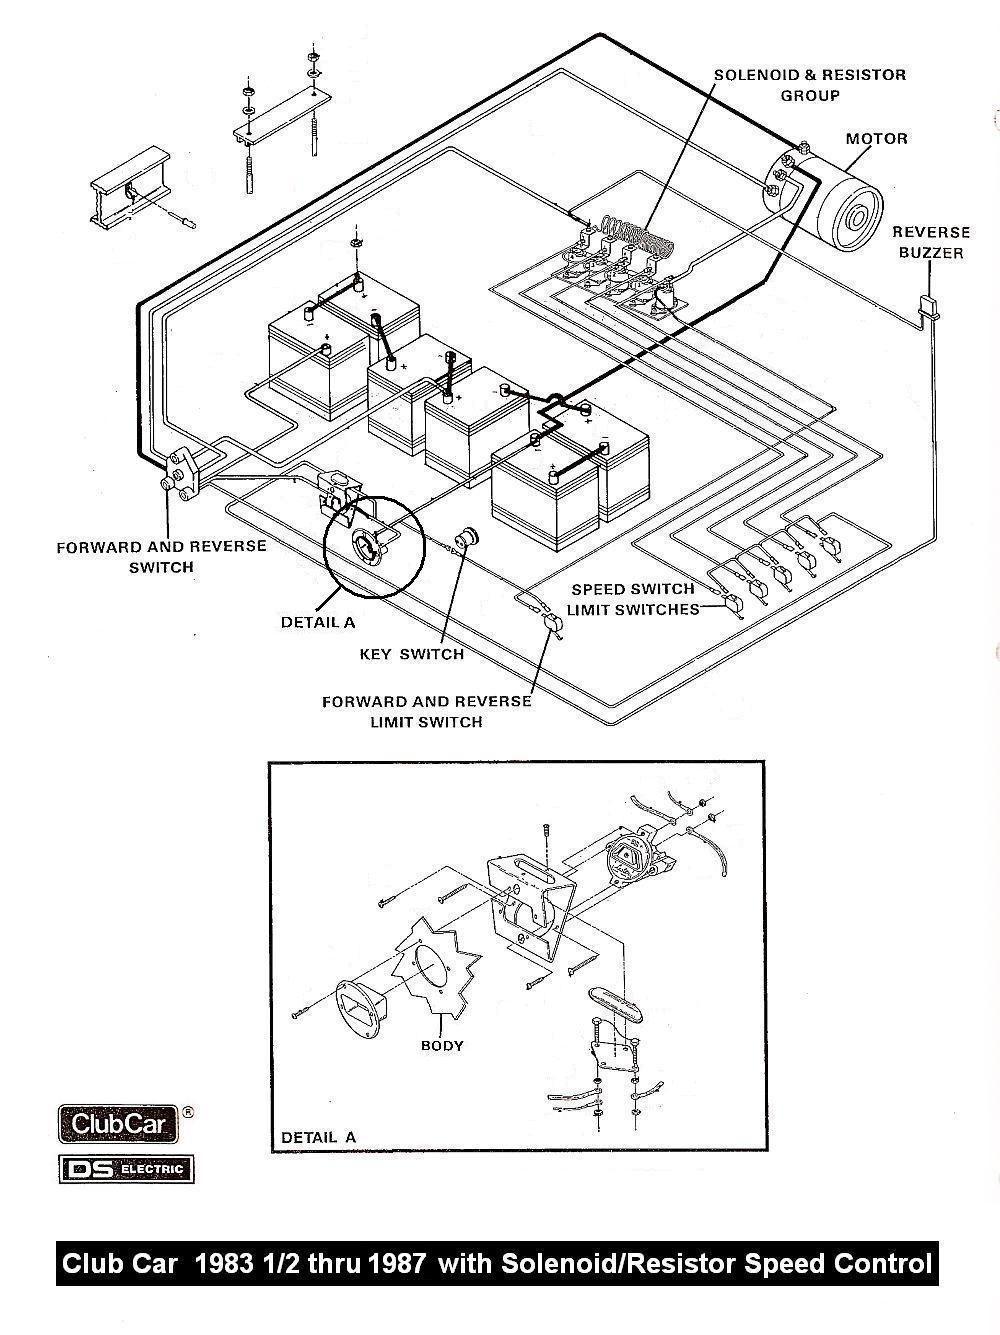 mid 90s club car ds runs out key on club car wiring diagram 36 wiring diagram electric club car wiring diagrams club car wiring diagram 36 volt club car 1983 1 per thru 1987 solenoid or resistor speed control